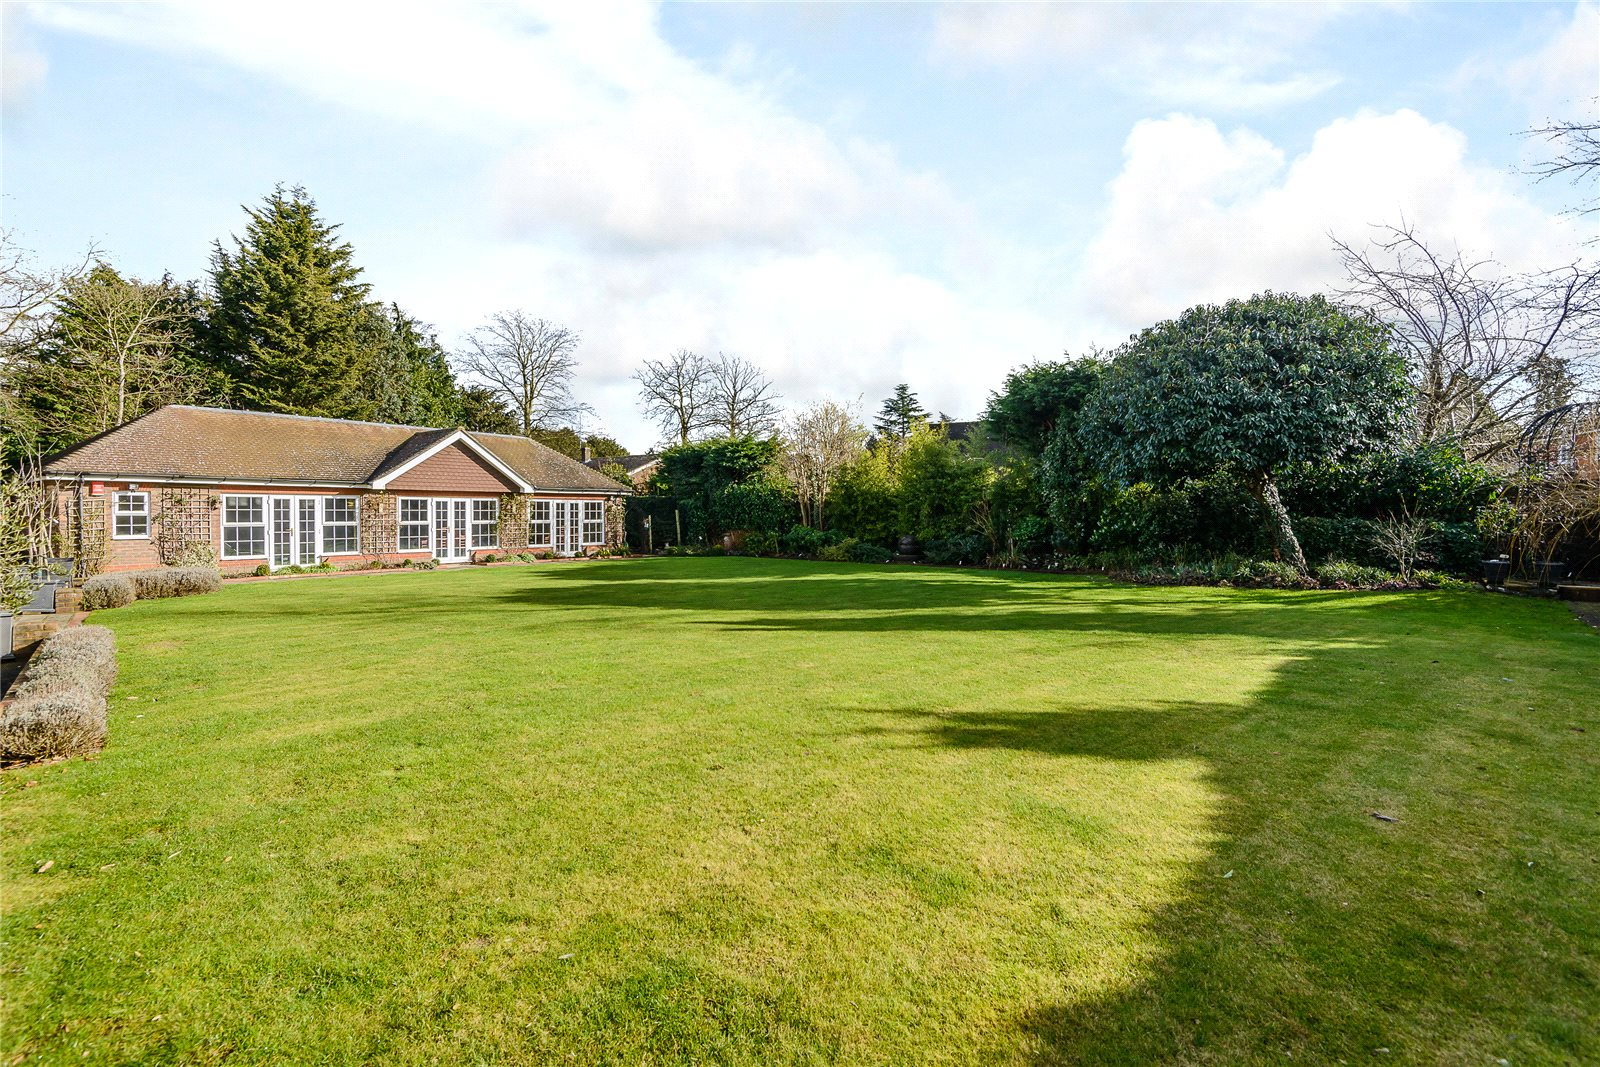 Additional photo for property listing at Camp Road, Gerrards Cross, Bucks, SL9 Ingiltere